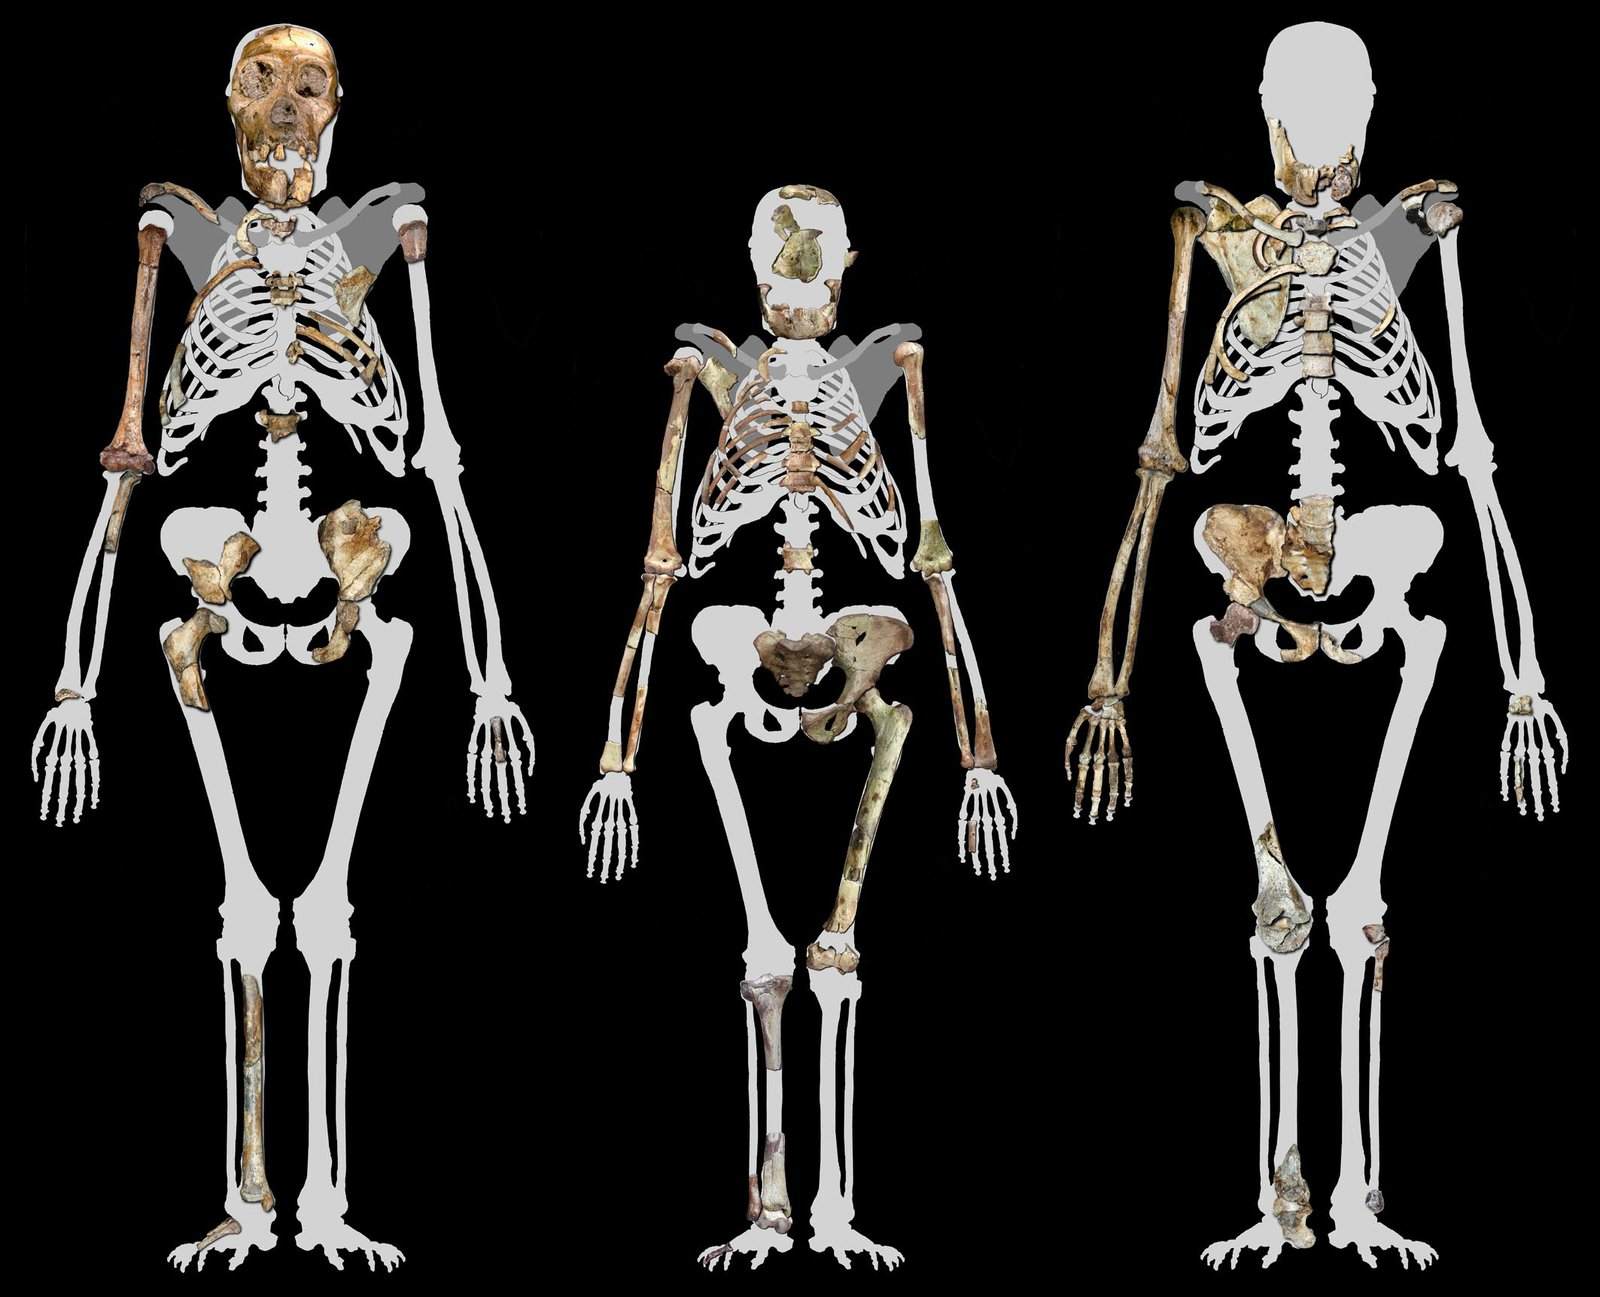 Malapa Hominin 1 (MH1) left, Lucy (AL 288-1 (Centre), and Malapa Hominin 2 (MH2) right.